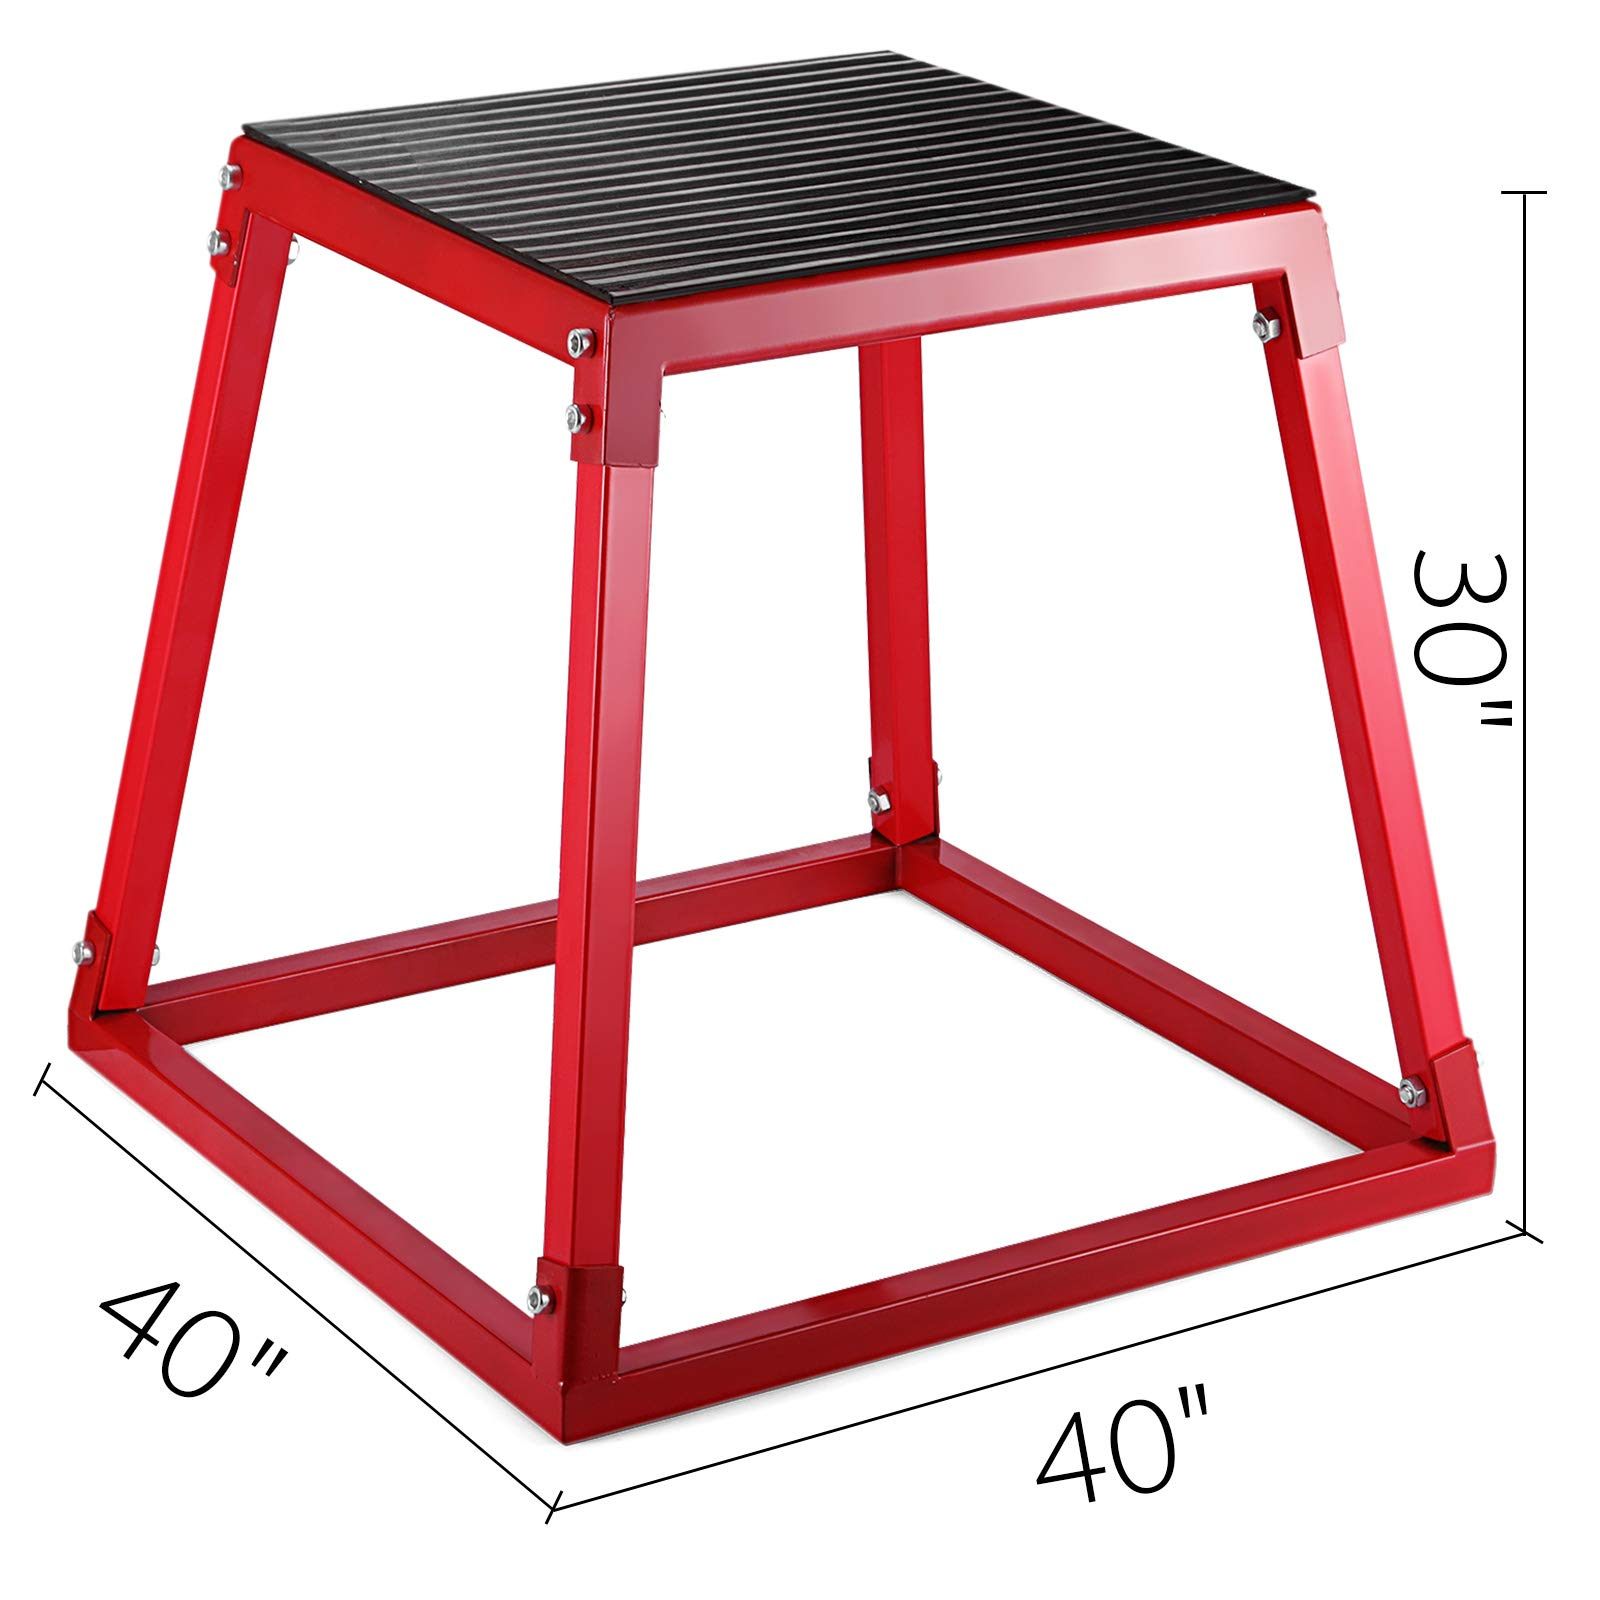 popsport Plyometric Platform Box 12/18/24/30 Inch Fitness Exercise Jump Box Step Plyometric Box Jump for Exercise Fit Training (red, 30inch)